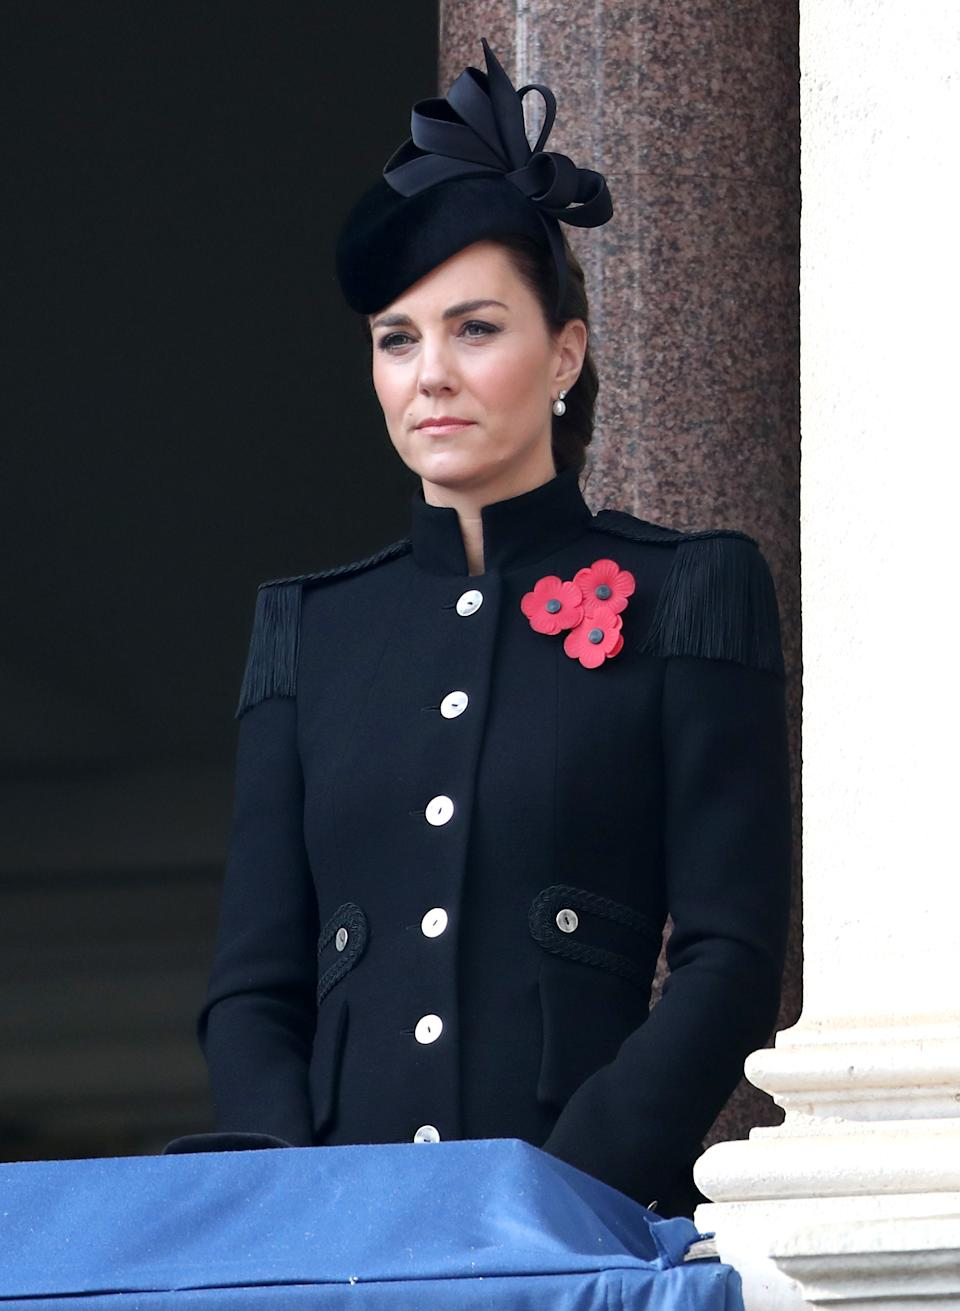 LONDON, ENGLAND - NOVEMBER 08: Catherine, Duchess of Cambridge during the National Service of Remembrance at The Cenotaph on November 08, 2020 in London, England. Remembrance Sunday services are still able to go ahead despite the covid-19 measures in place across the various nations of the UK. Each country has issued guidelines to ensure the safety of those taking part. (Photo by Chris Jackson - WPA Pool/Getty Images)